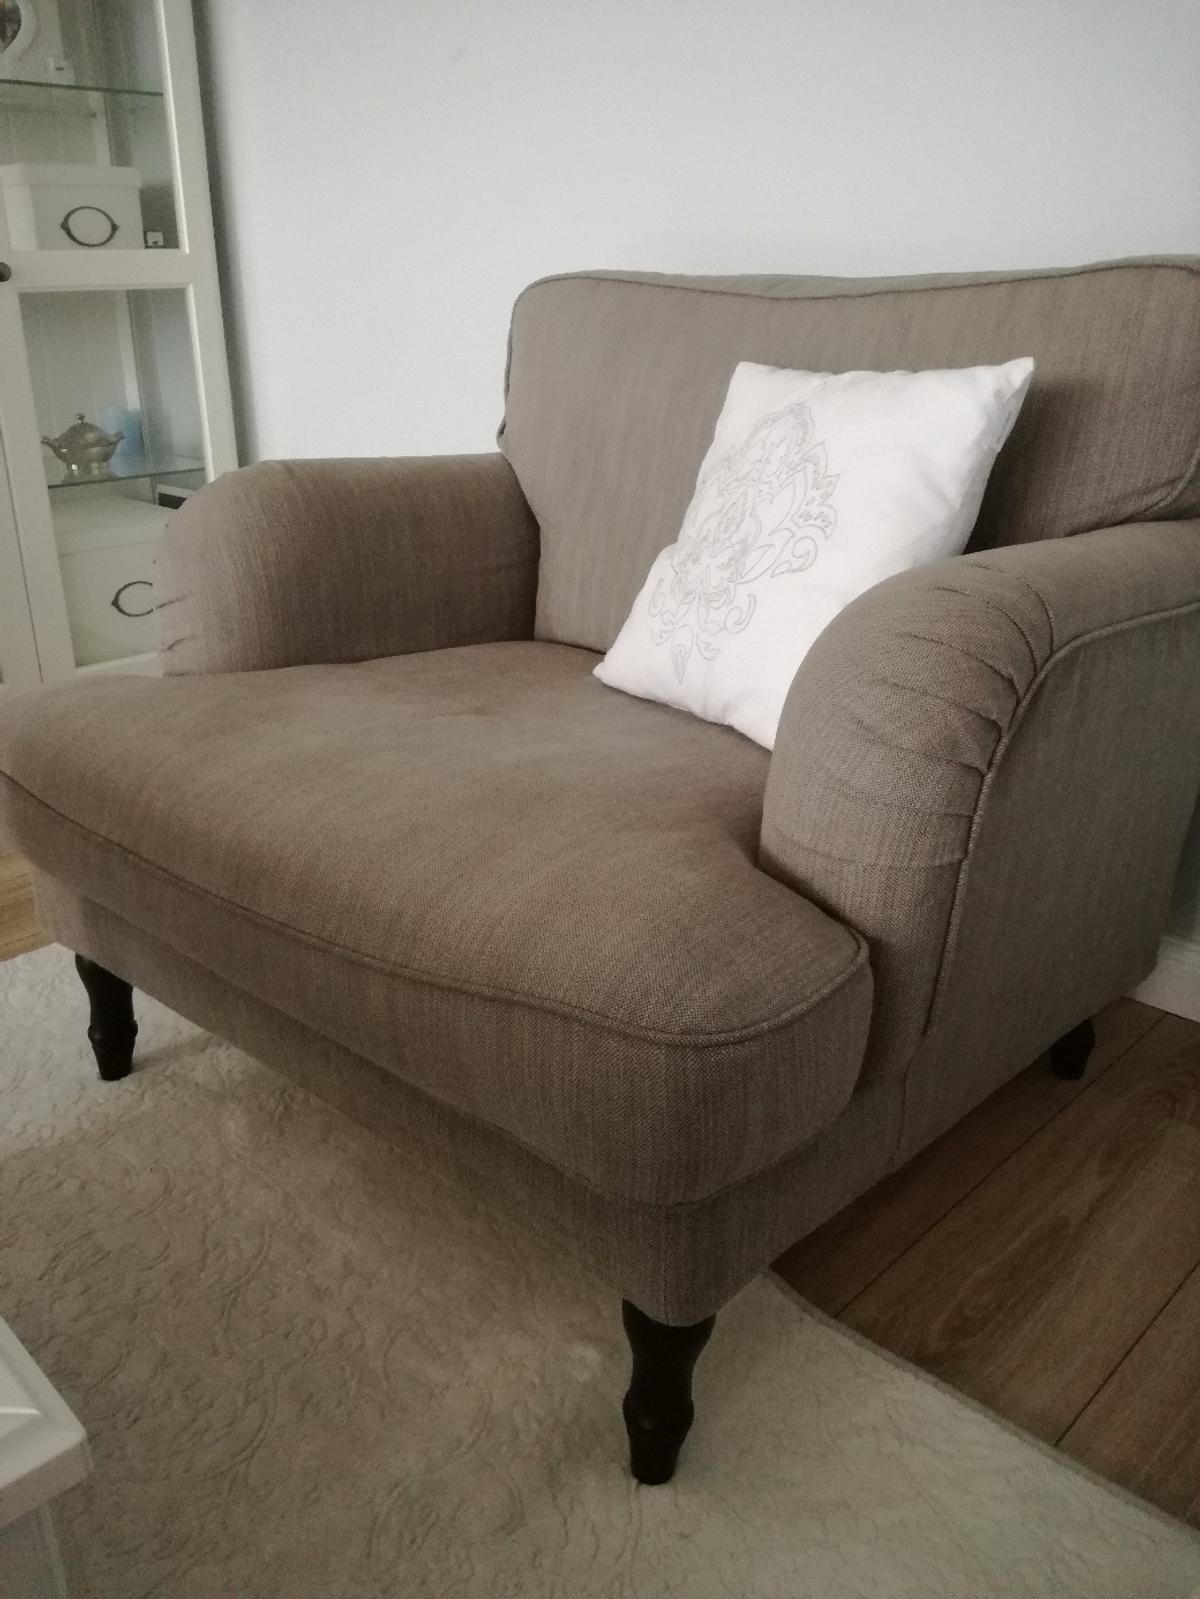 IKEA Stocksund Sessel in 81739 München for €240.00 for sale ...